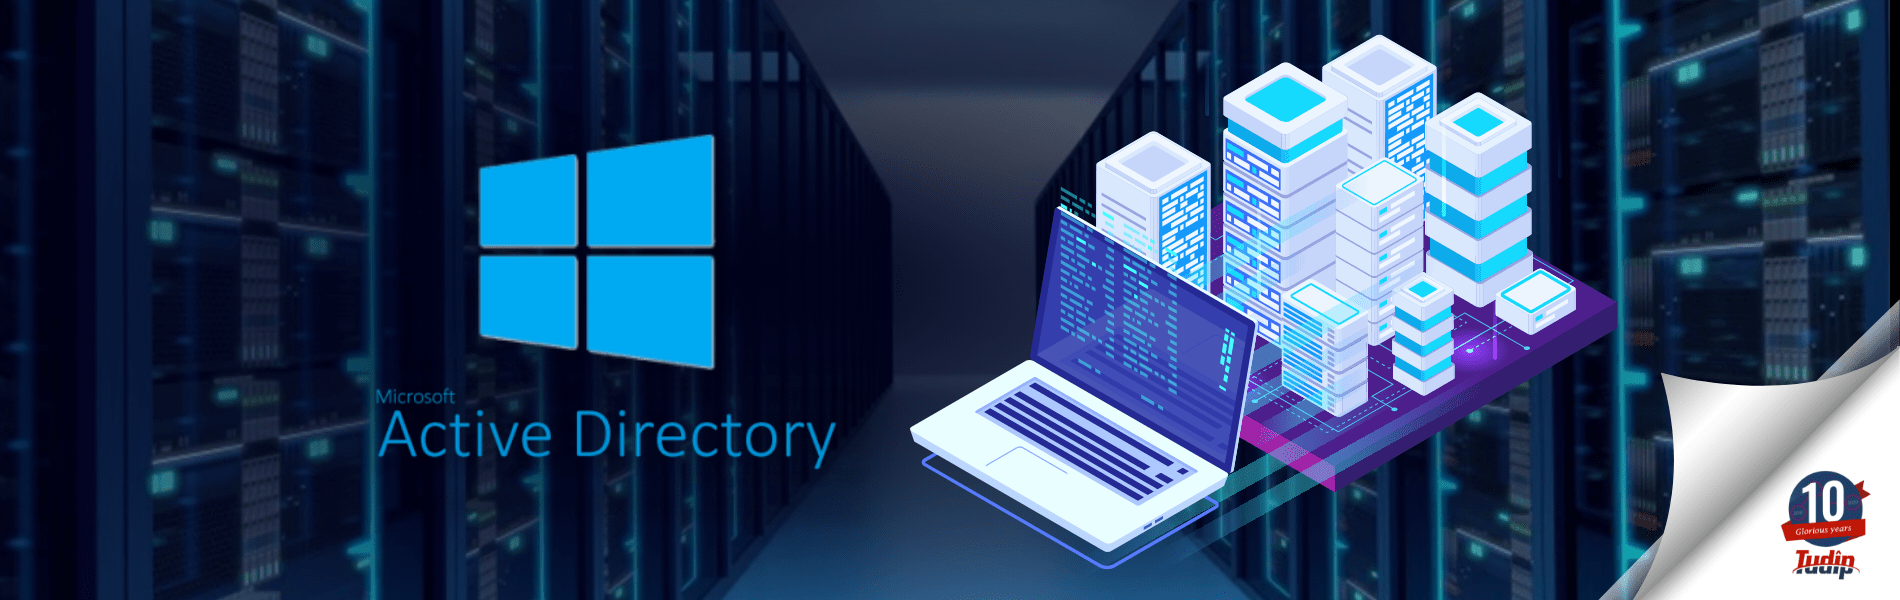 User_In_Active_Directory_changed_website